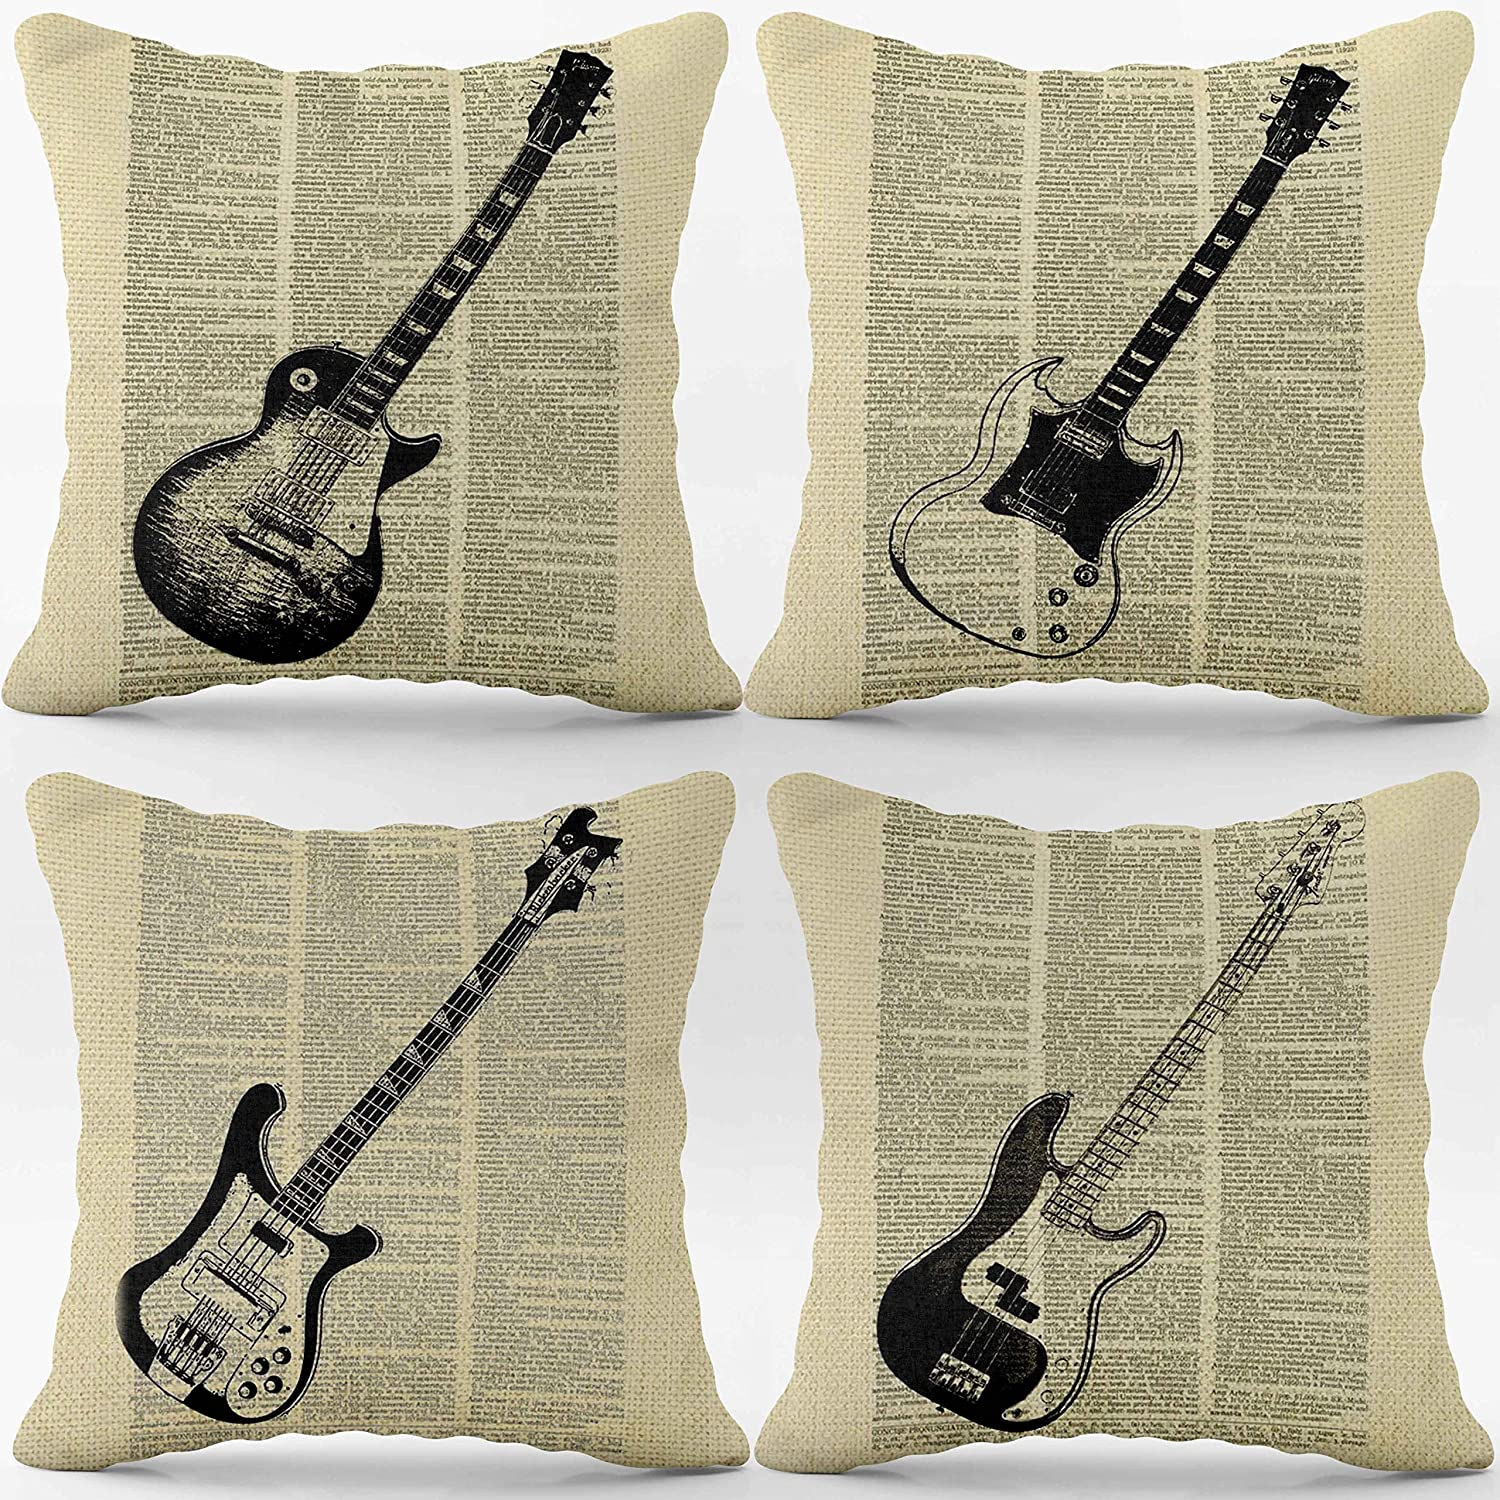 GibsonGuitarVintageLinen Throw Pillow Case, 18 x 18 Inch Set of 4, Music Theme Room Decor, Guitar Lover Gifts, Gifts for Husband, Dad, Grandpa, Boyfriend, Brother, Cushion Cover for Sofa Couch Bed